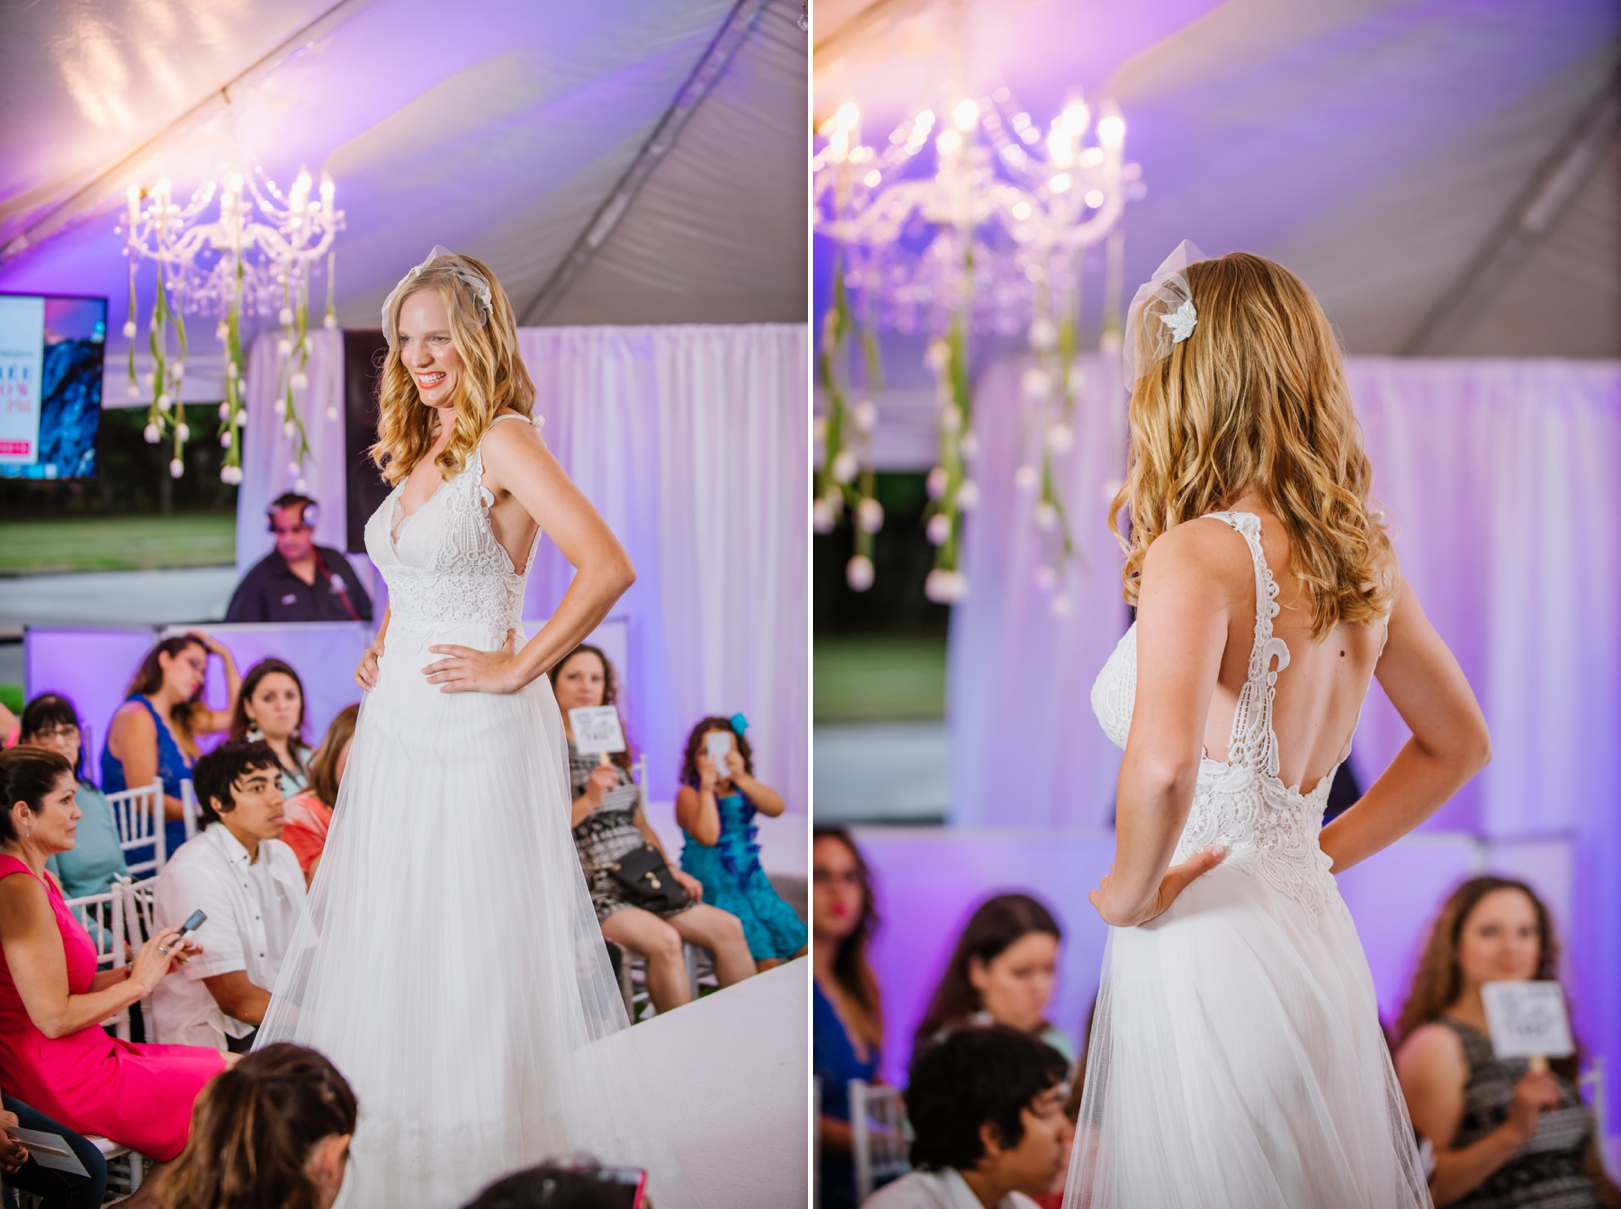 tampa-event-photographer-wedding-fashion_0022.jpg